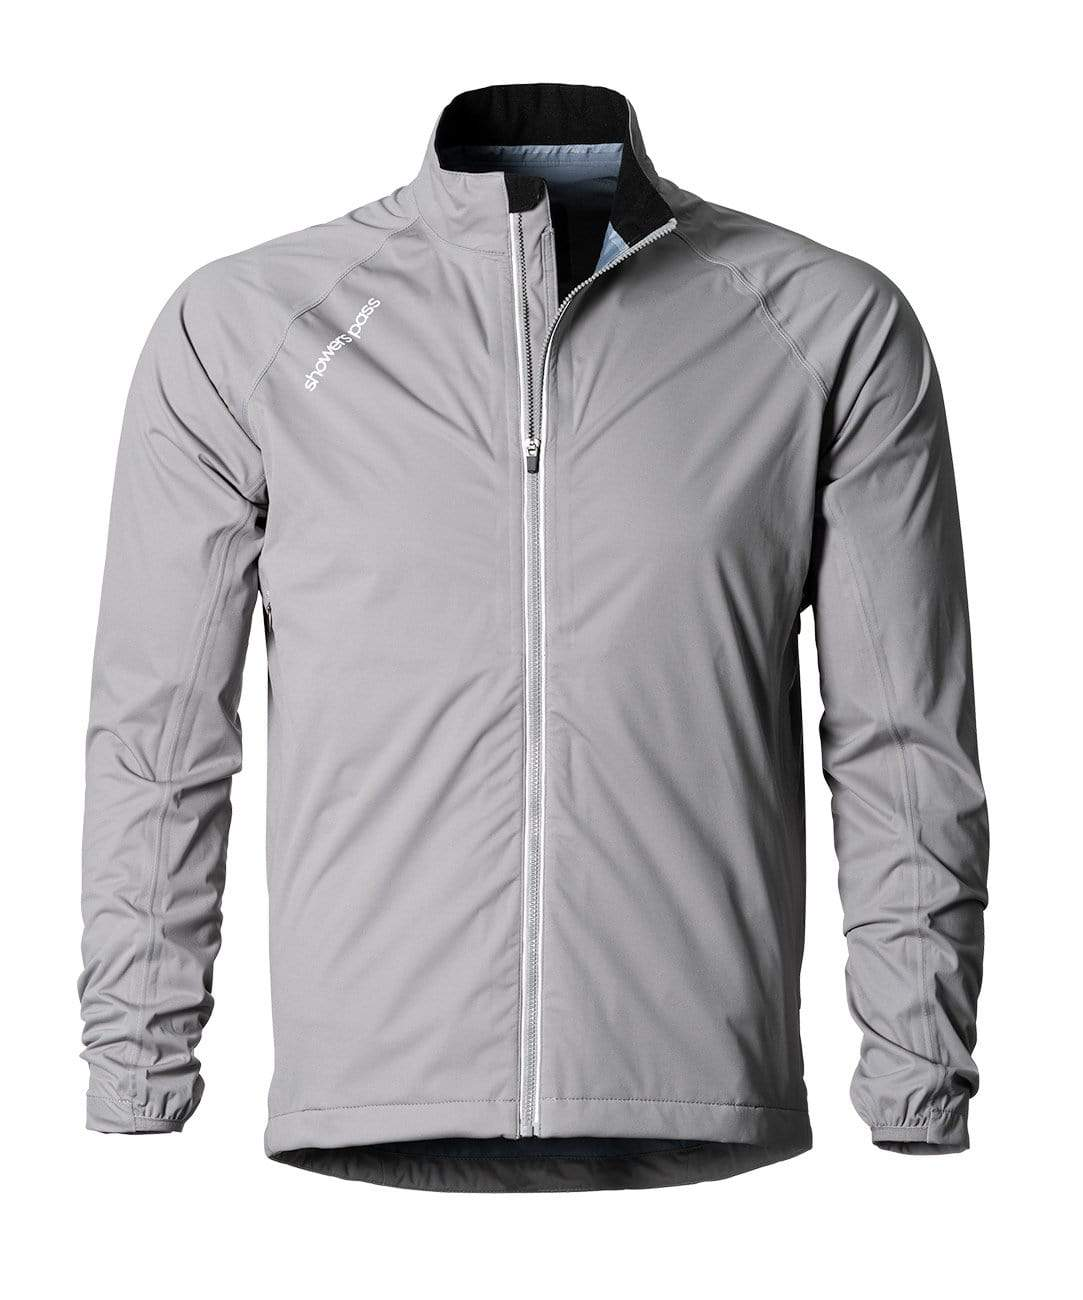 Men's Cloudburst Jacket